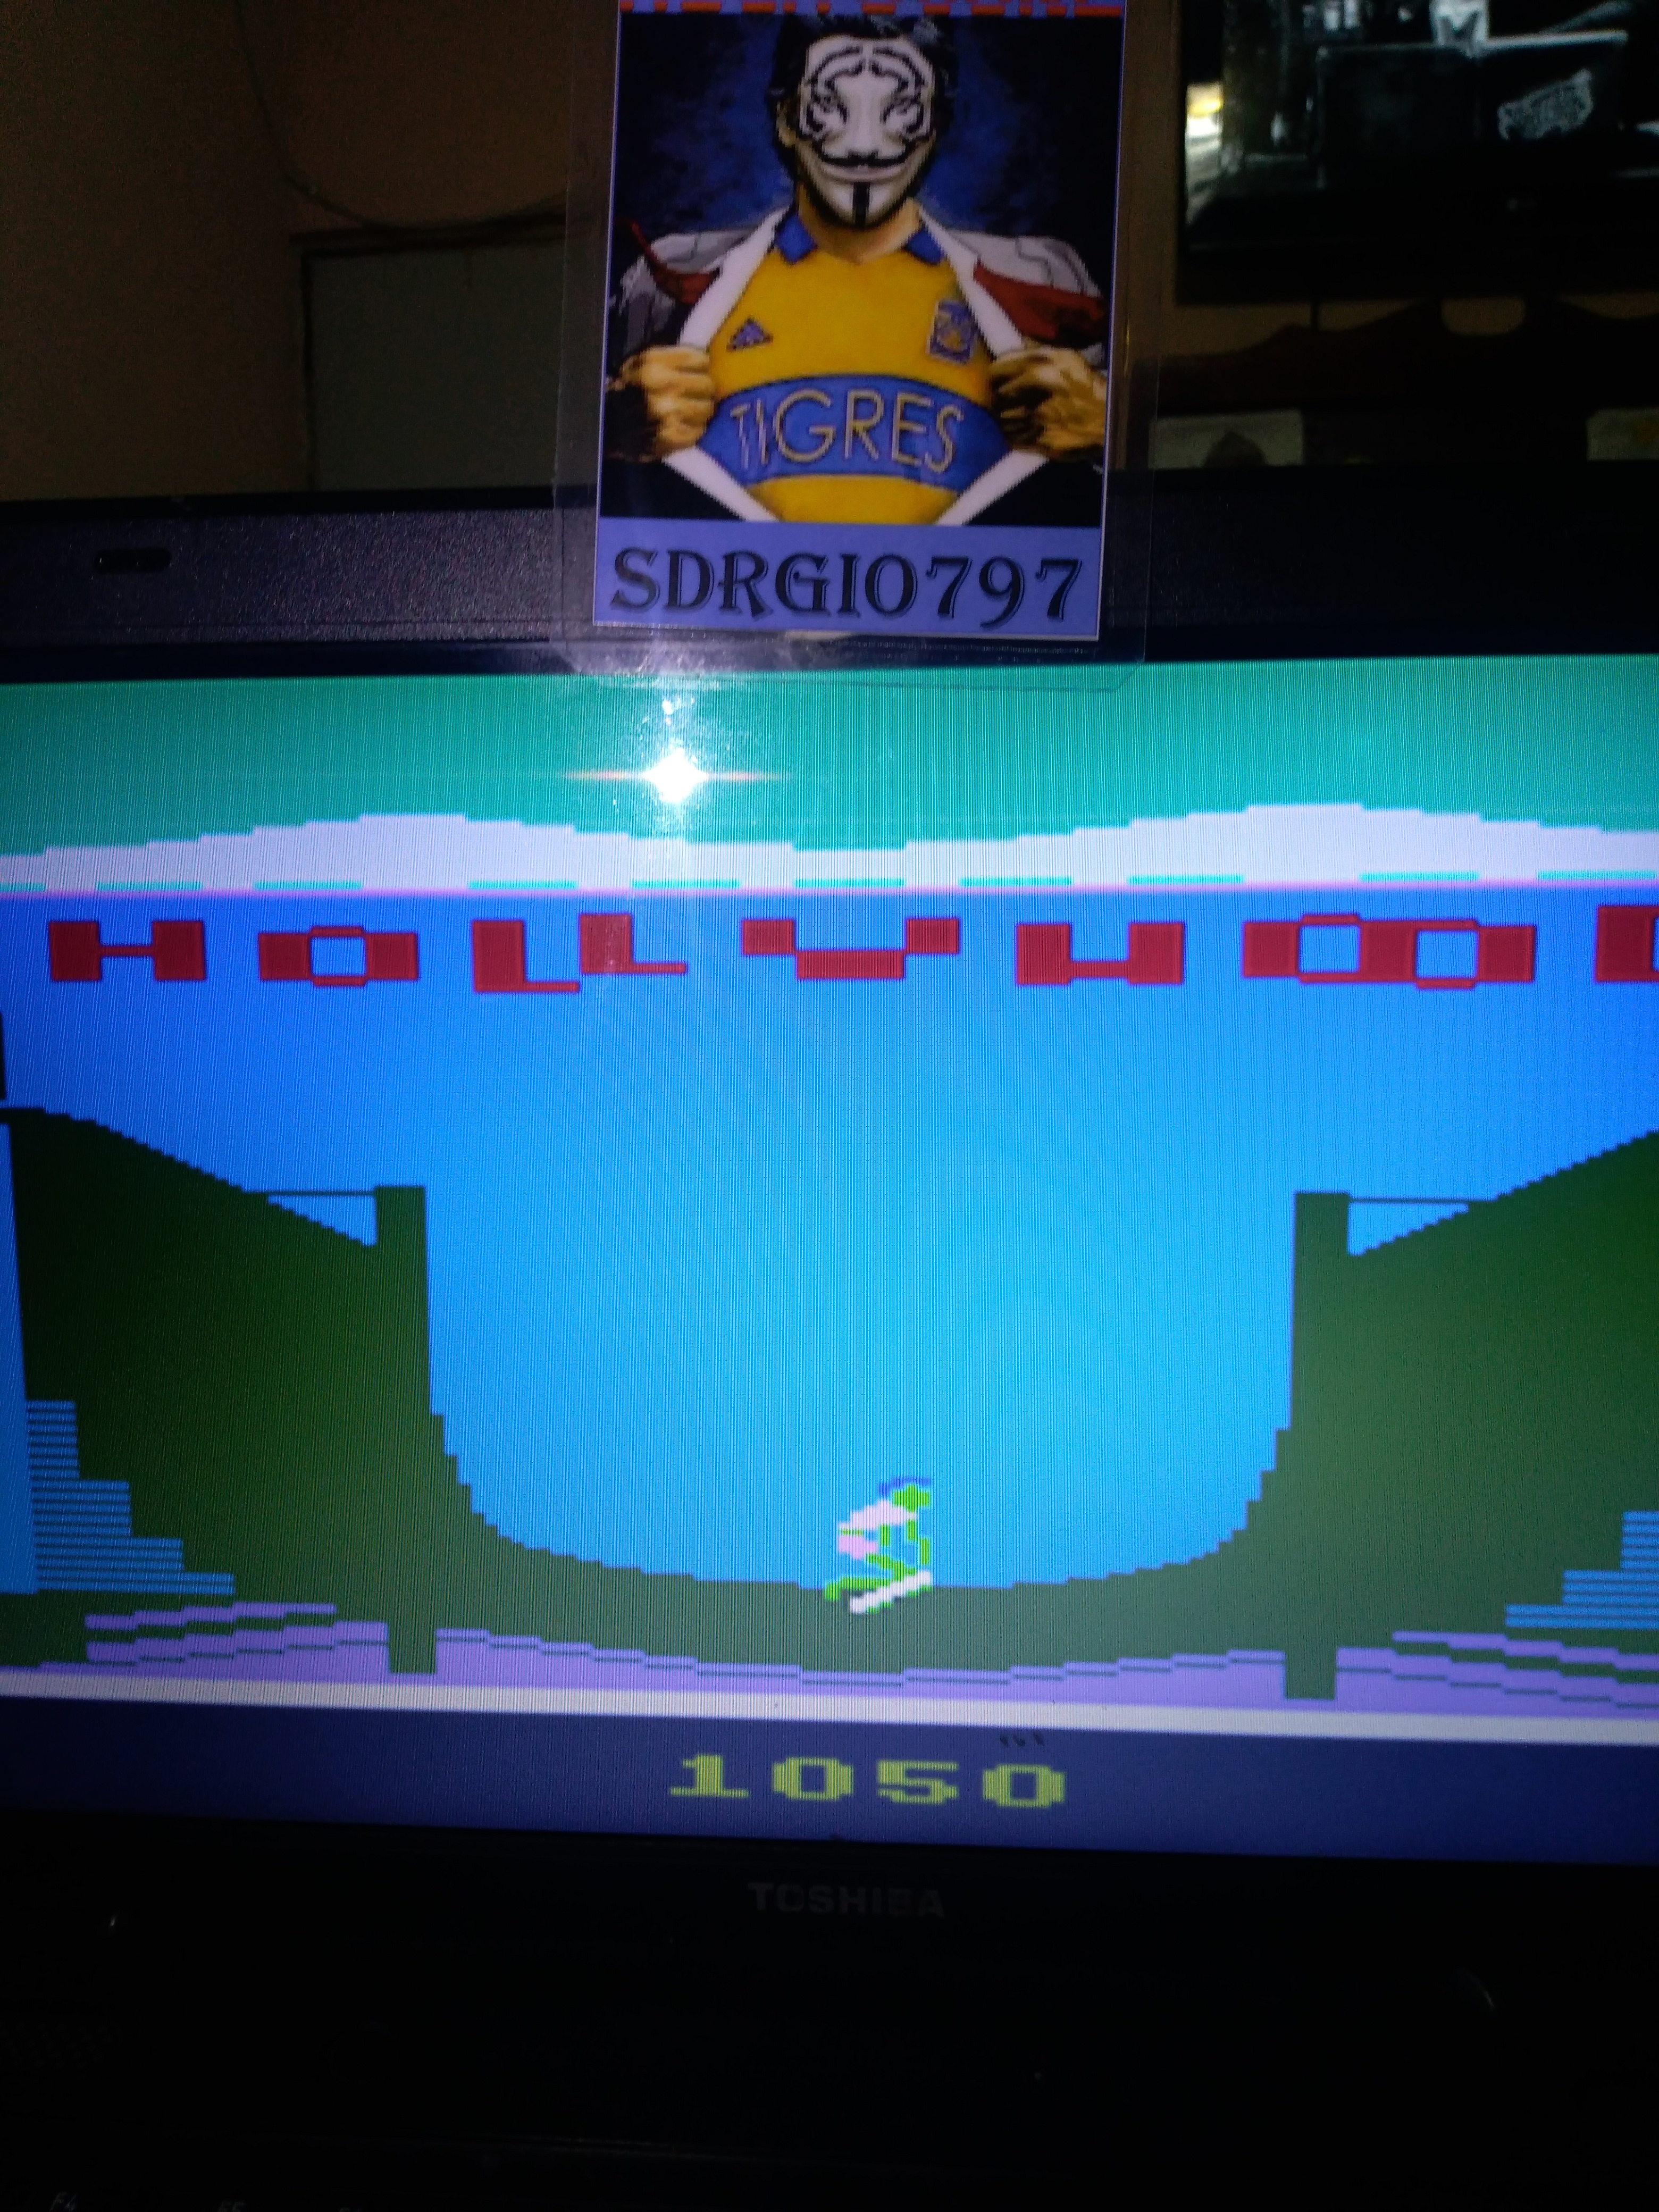 Sdrgio797: California Games: Half Pipe (Atari 2600 Emulated) 1,050 points on 2021-03-19 11:02:57